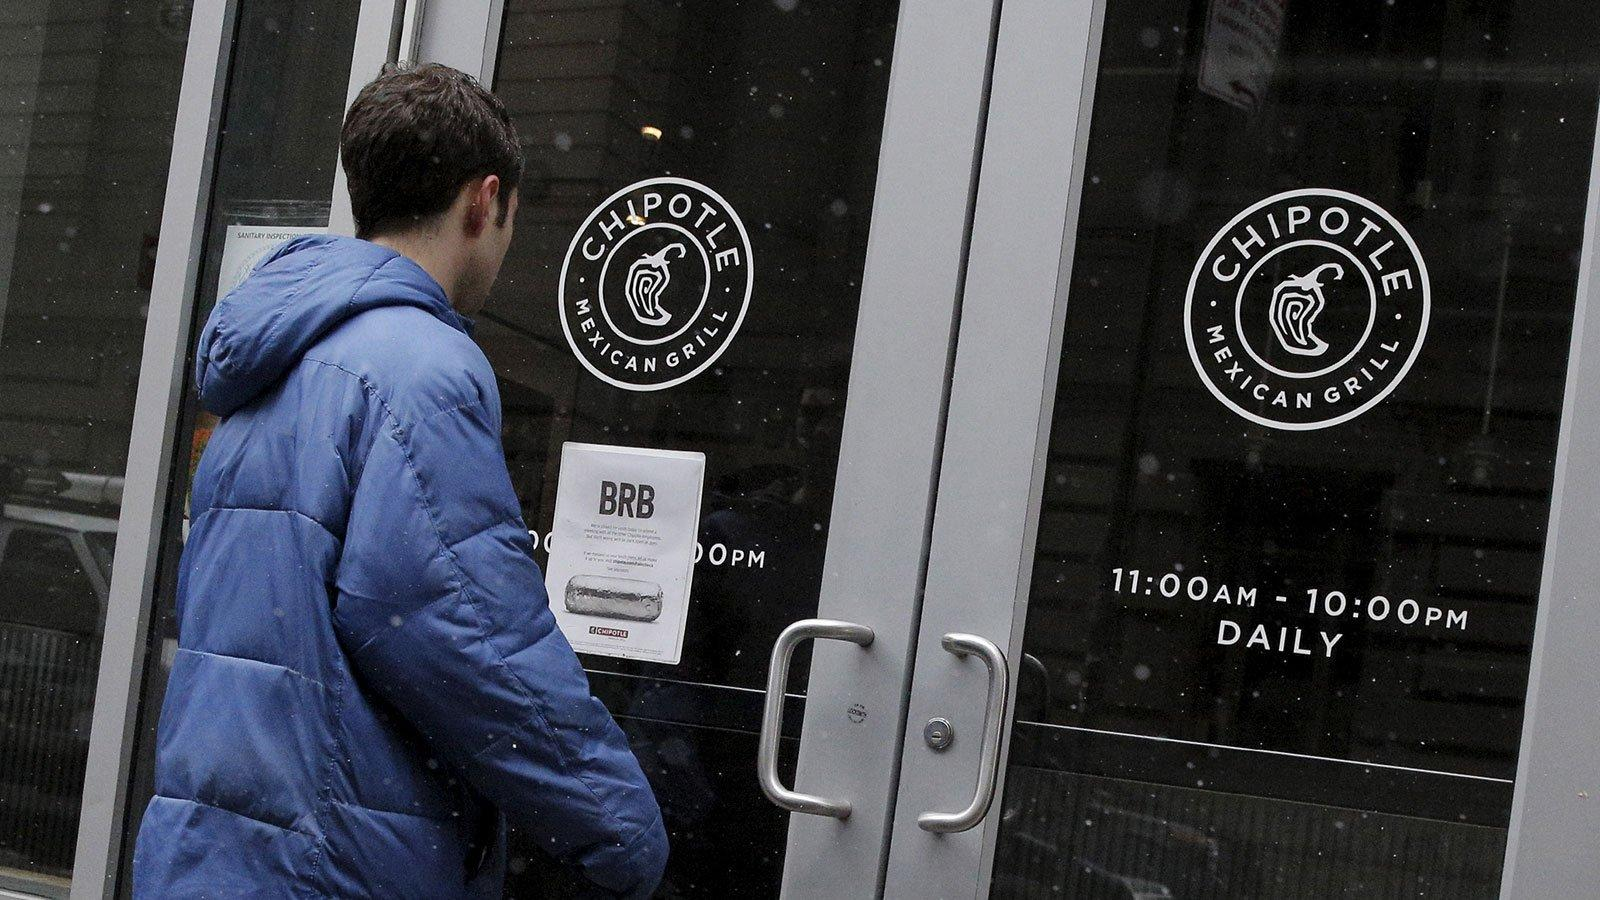 Will Chipotle Ever Win Back Its Customers?